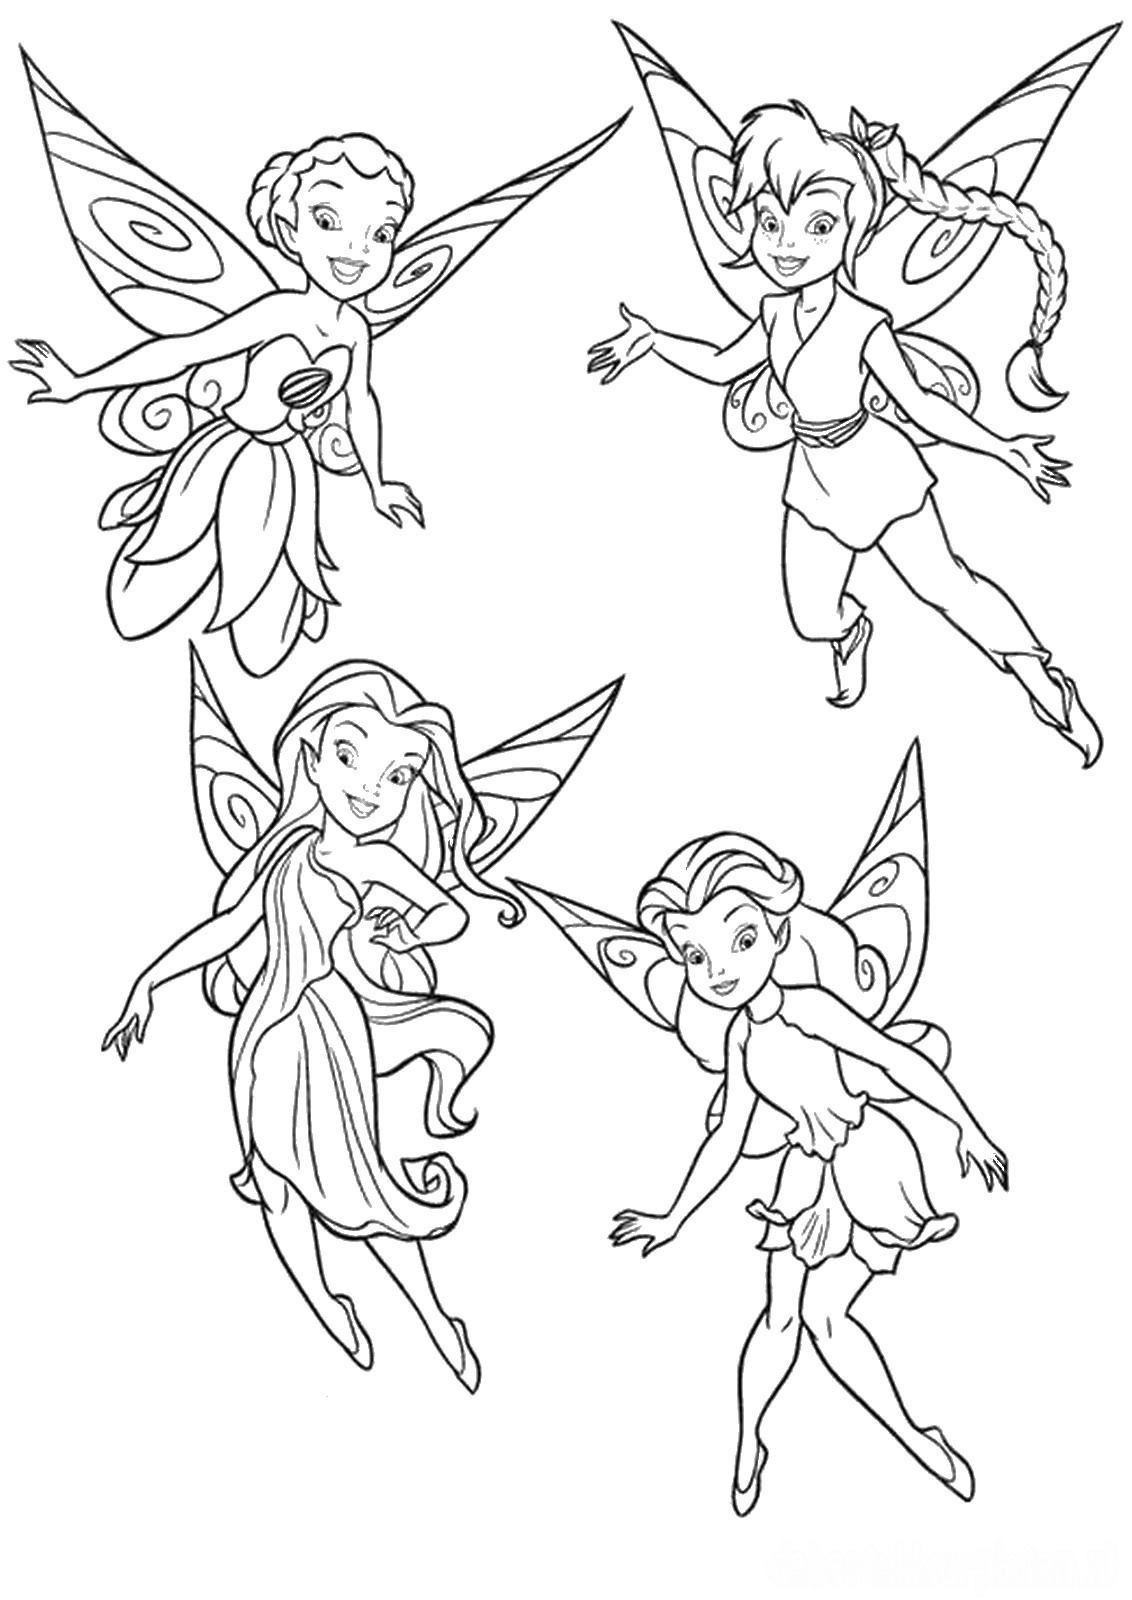 tinkerbell coloring tinkerbell coloring pages download and print tinkerbell tinkerbell coloring